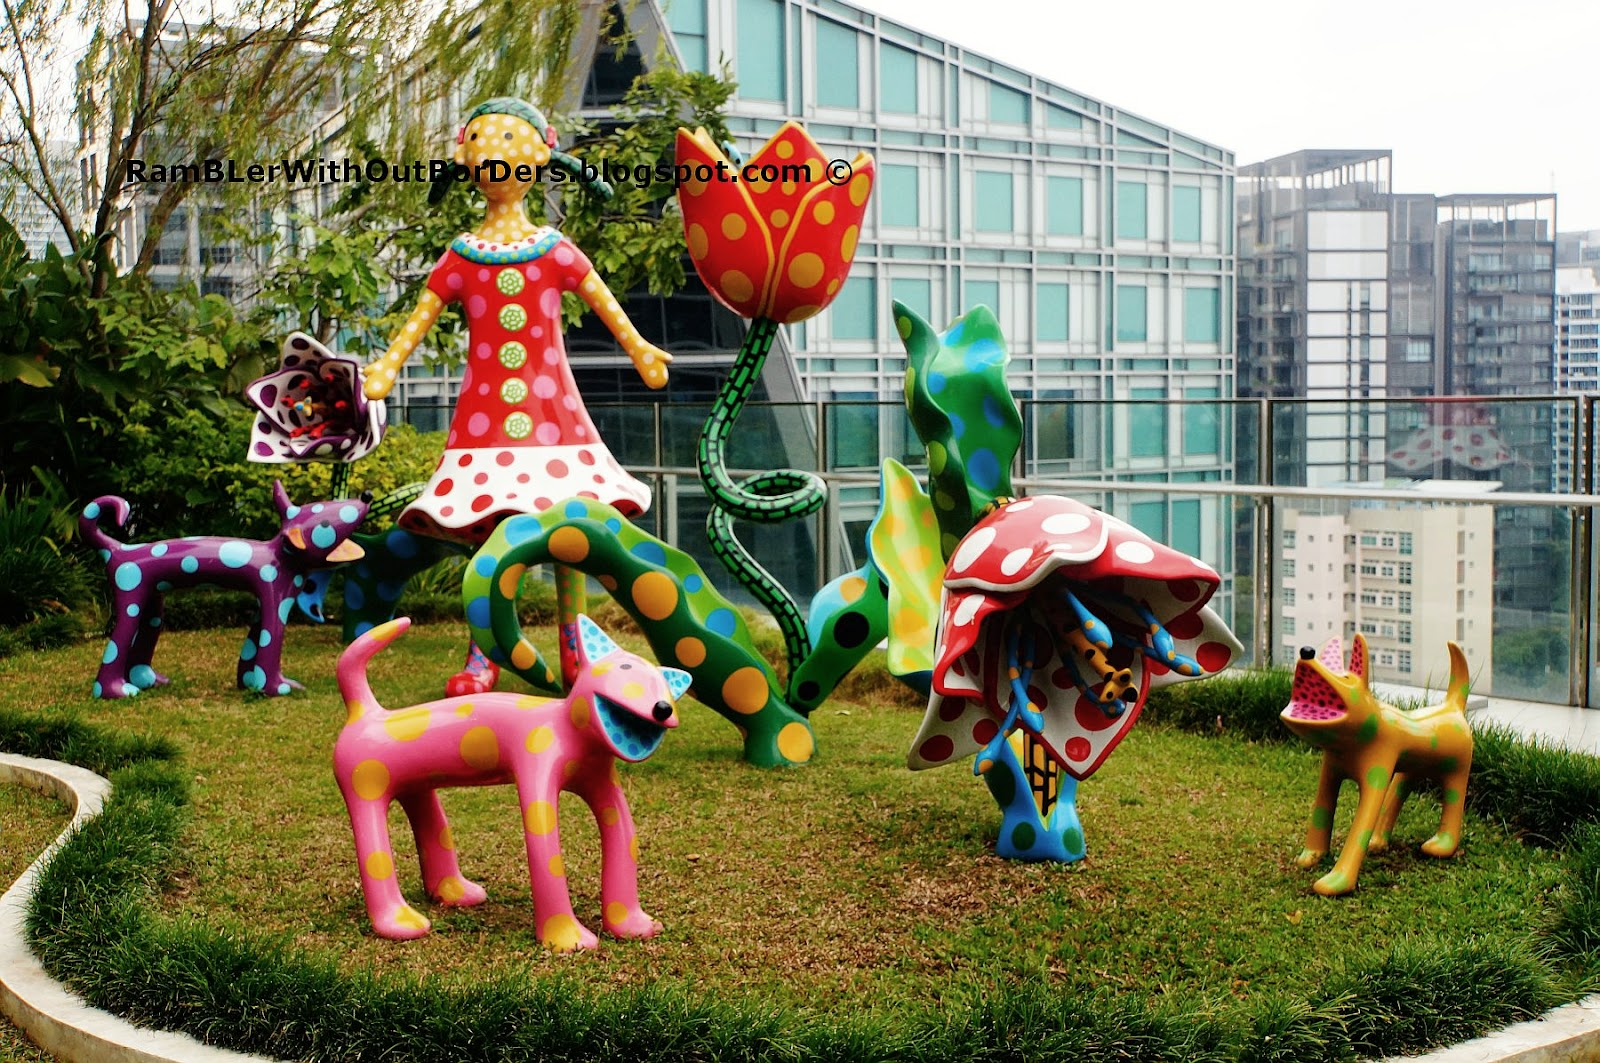 """Let's Go to a Paradise of Tulips"" (2009), Orchard Central, Singapore"